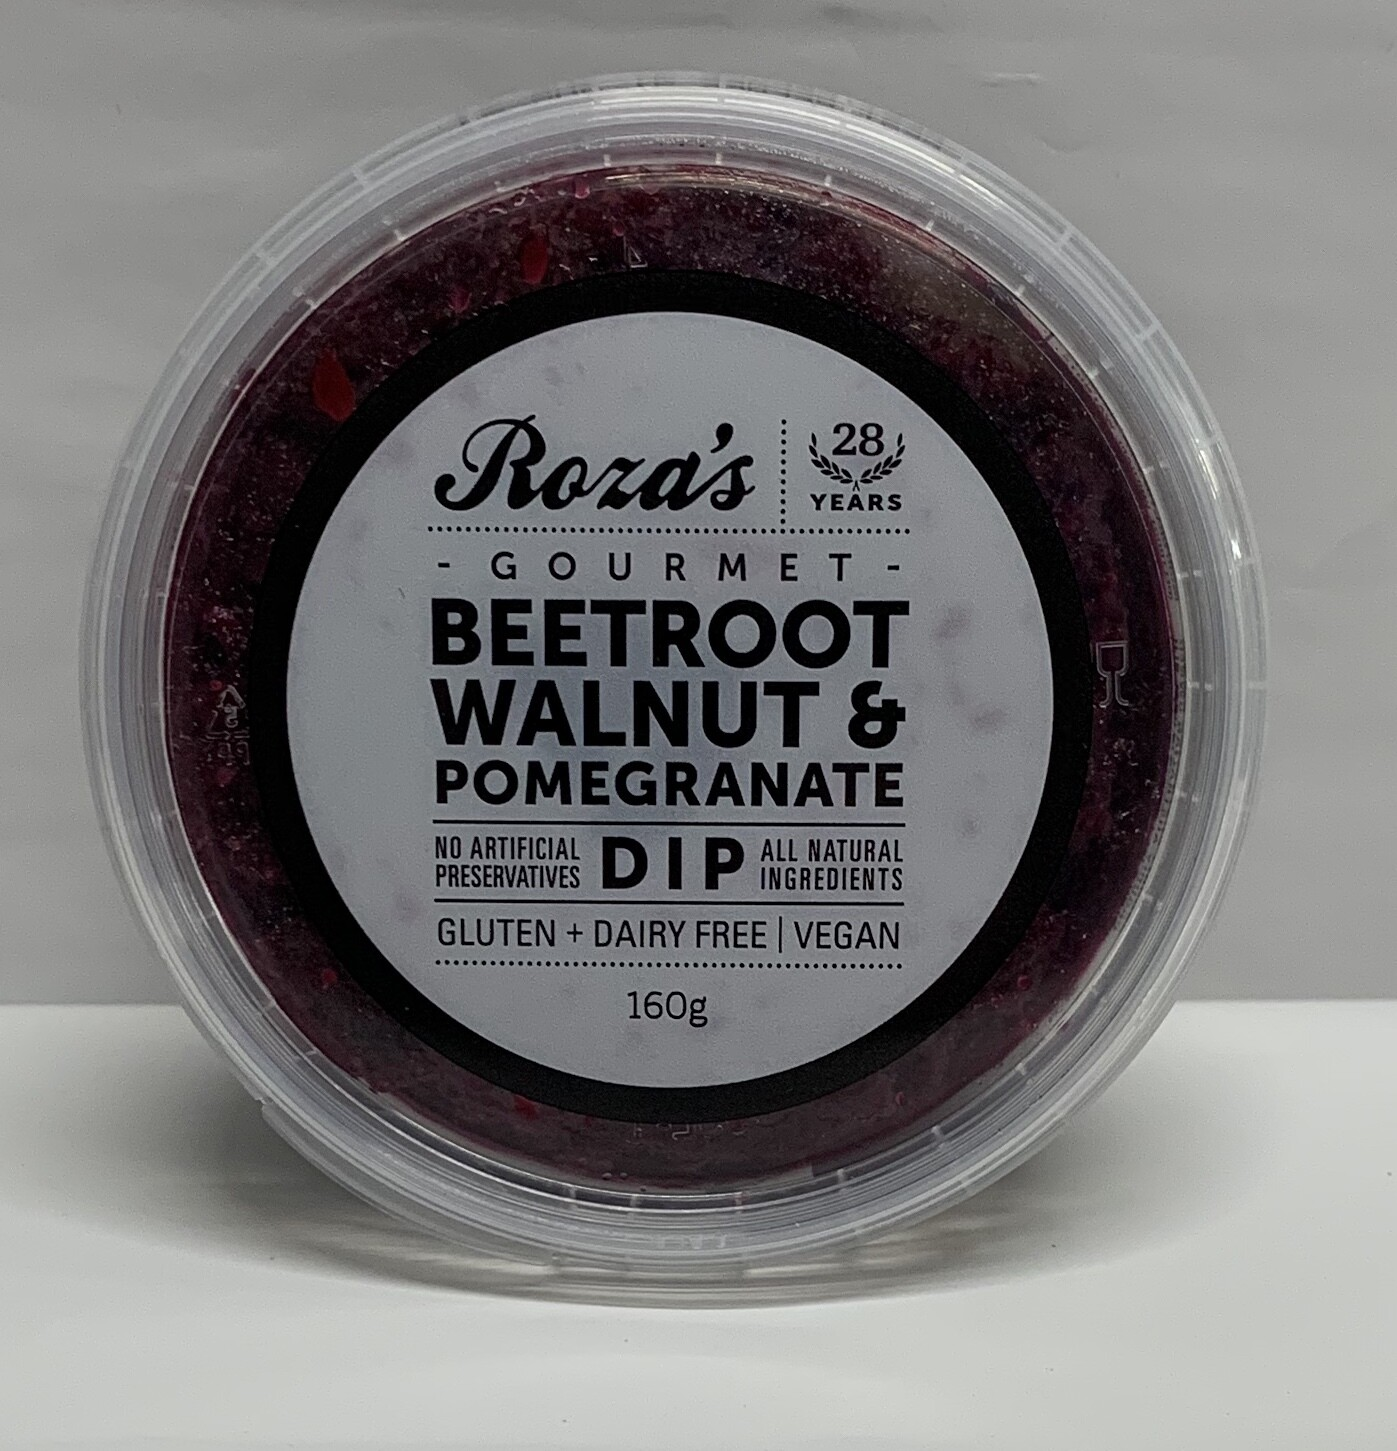 Beetroot and Walnut Dip (160g)